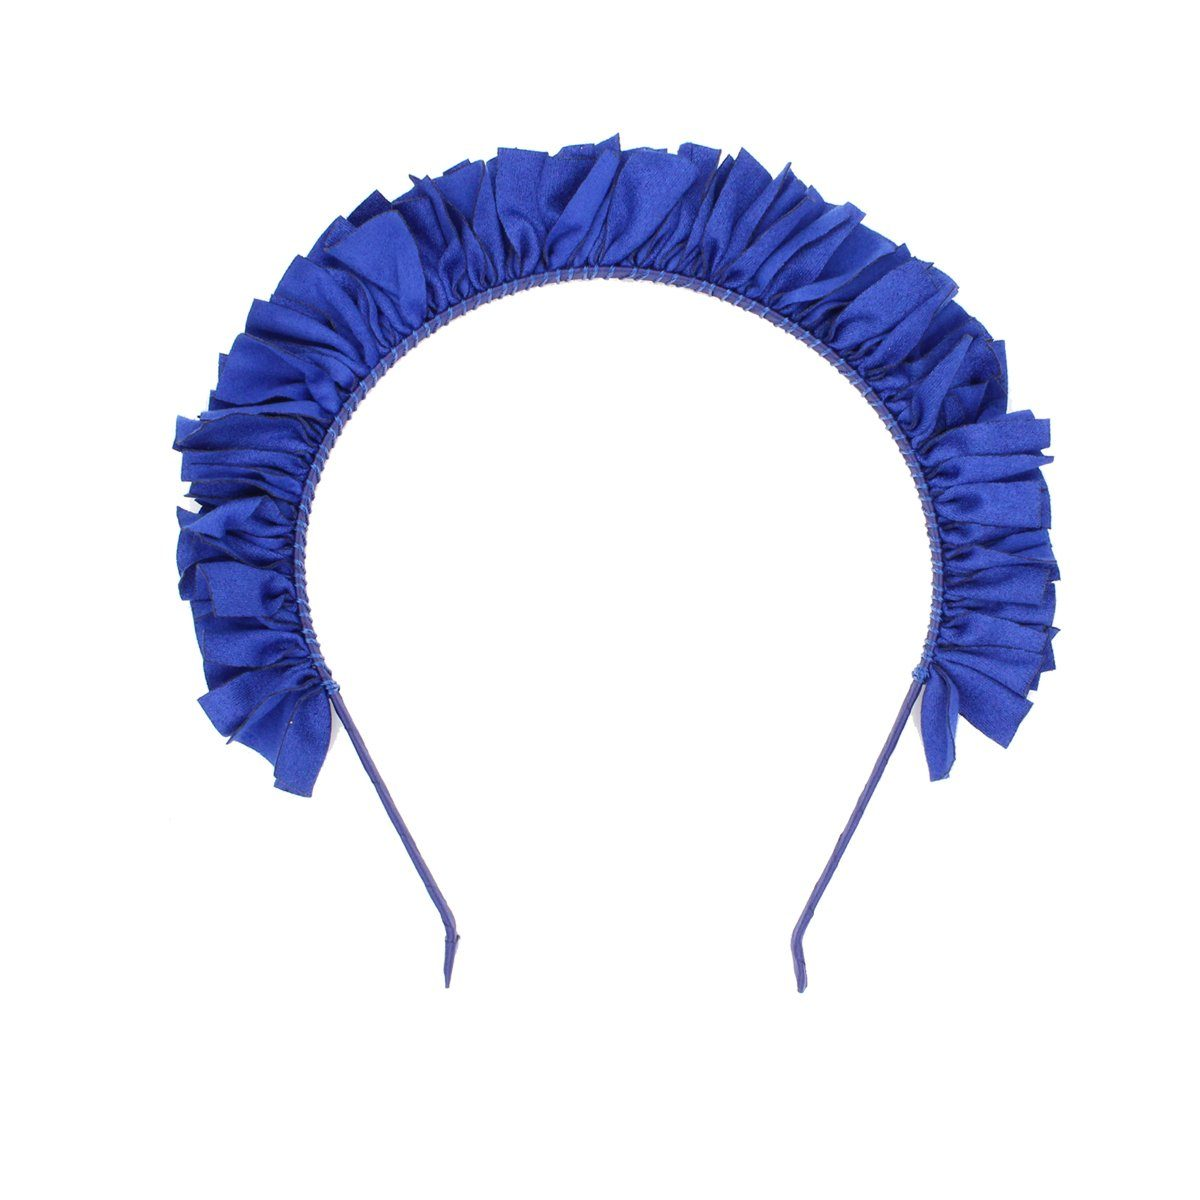 Suede Wreath Headband Headband Manière Royal Blue